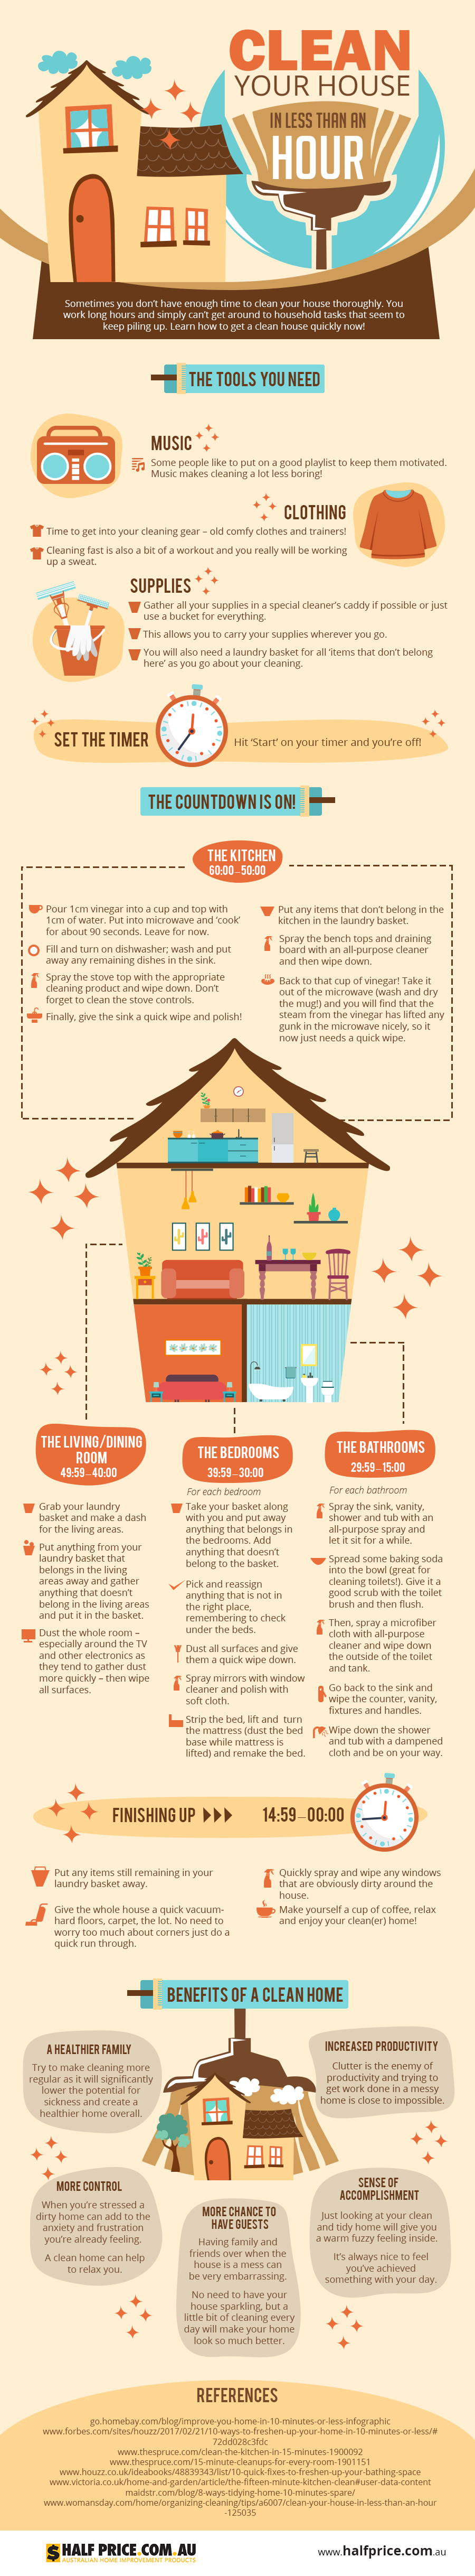 How to Get Your House in Ship-Shape in Just 60 Minutes! - Infographic